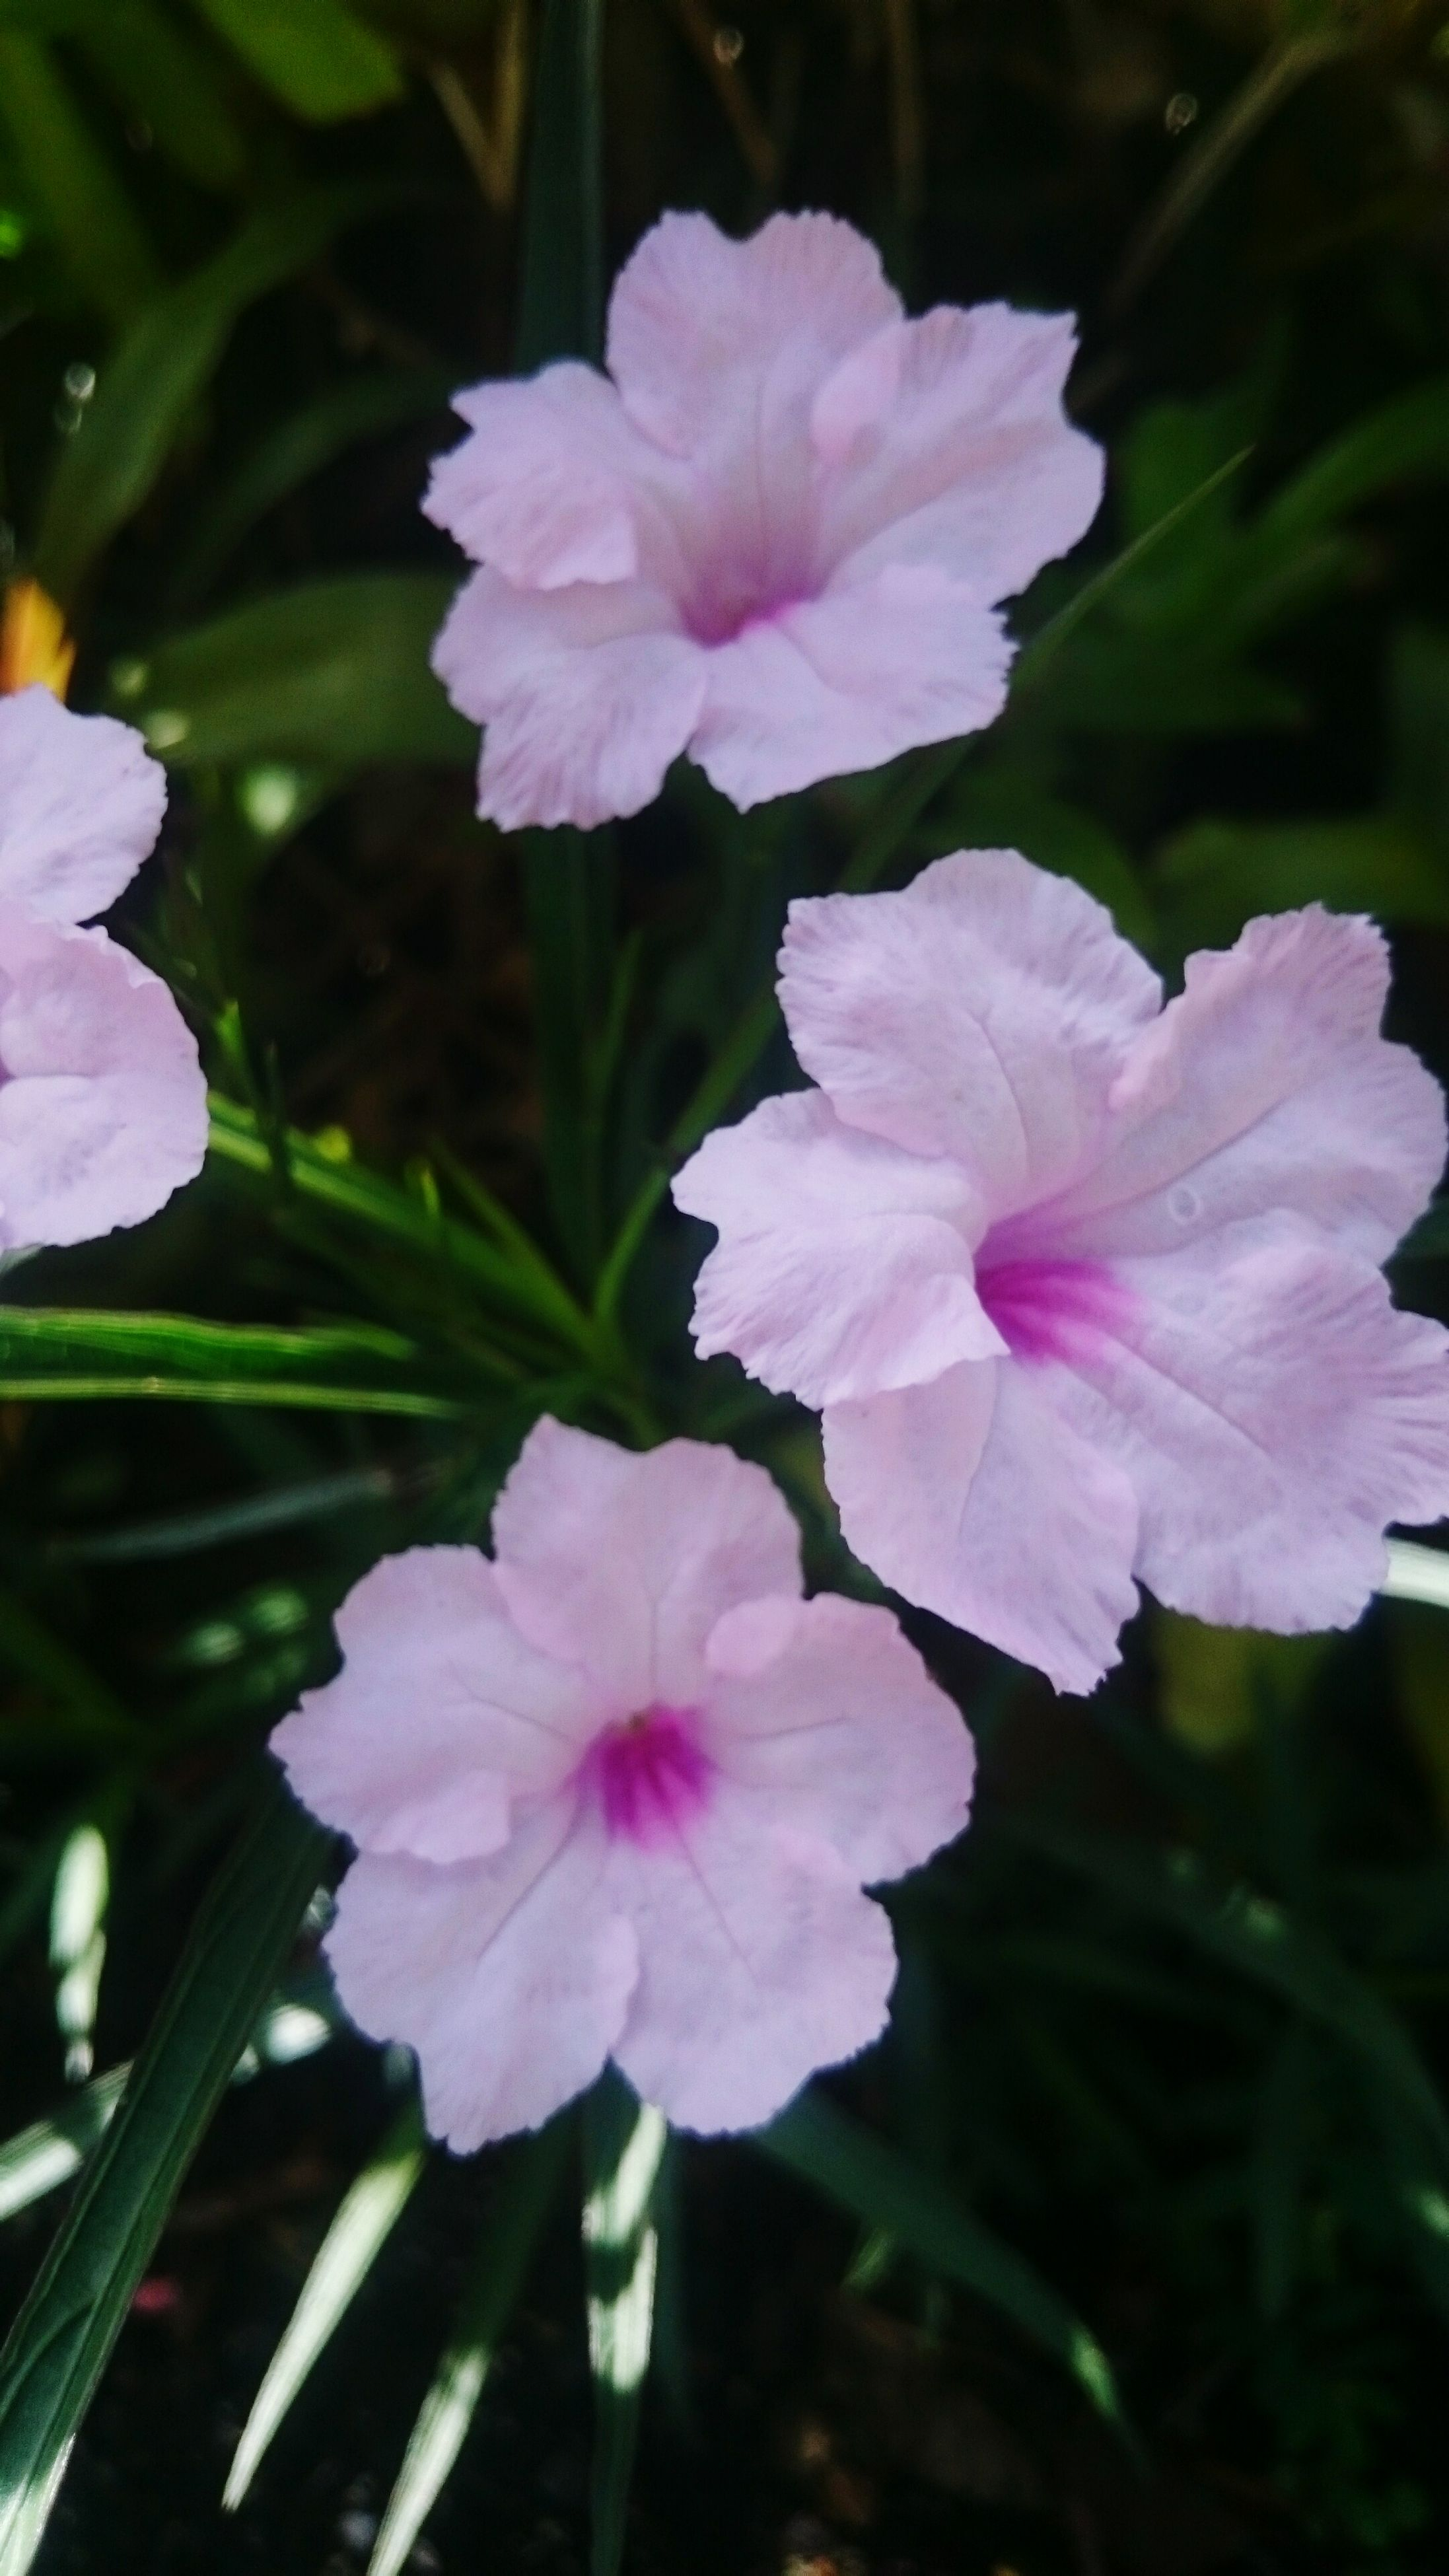 flower, petal, freshness, fragility, flower head, pink color, growth, beauty in nature, close-up, blooming, focus on foreground, nature, in bloom, plant, park - man made space, blossom, outdoors, day, leaf, no people